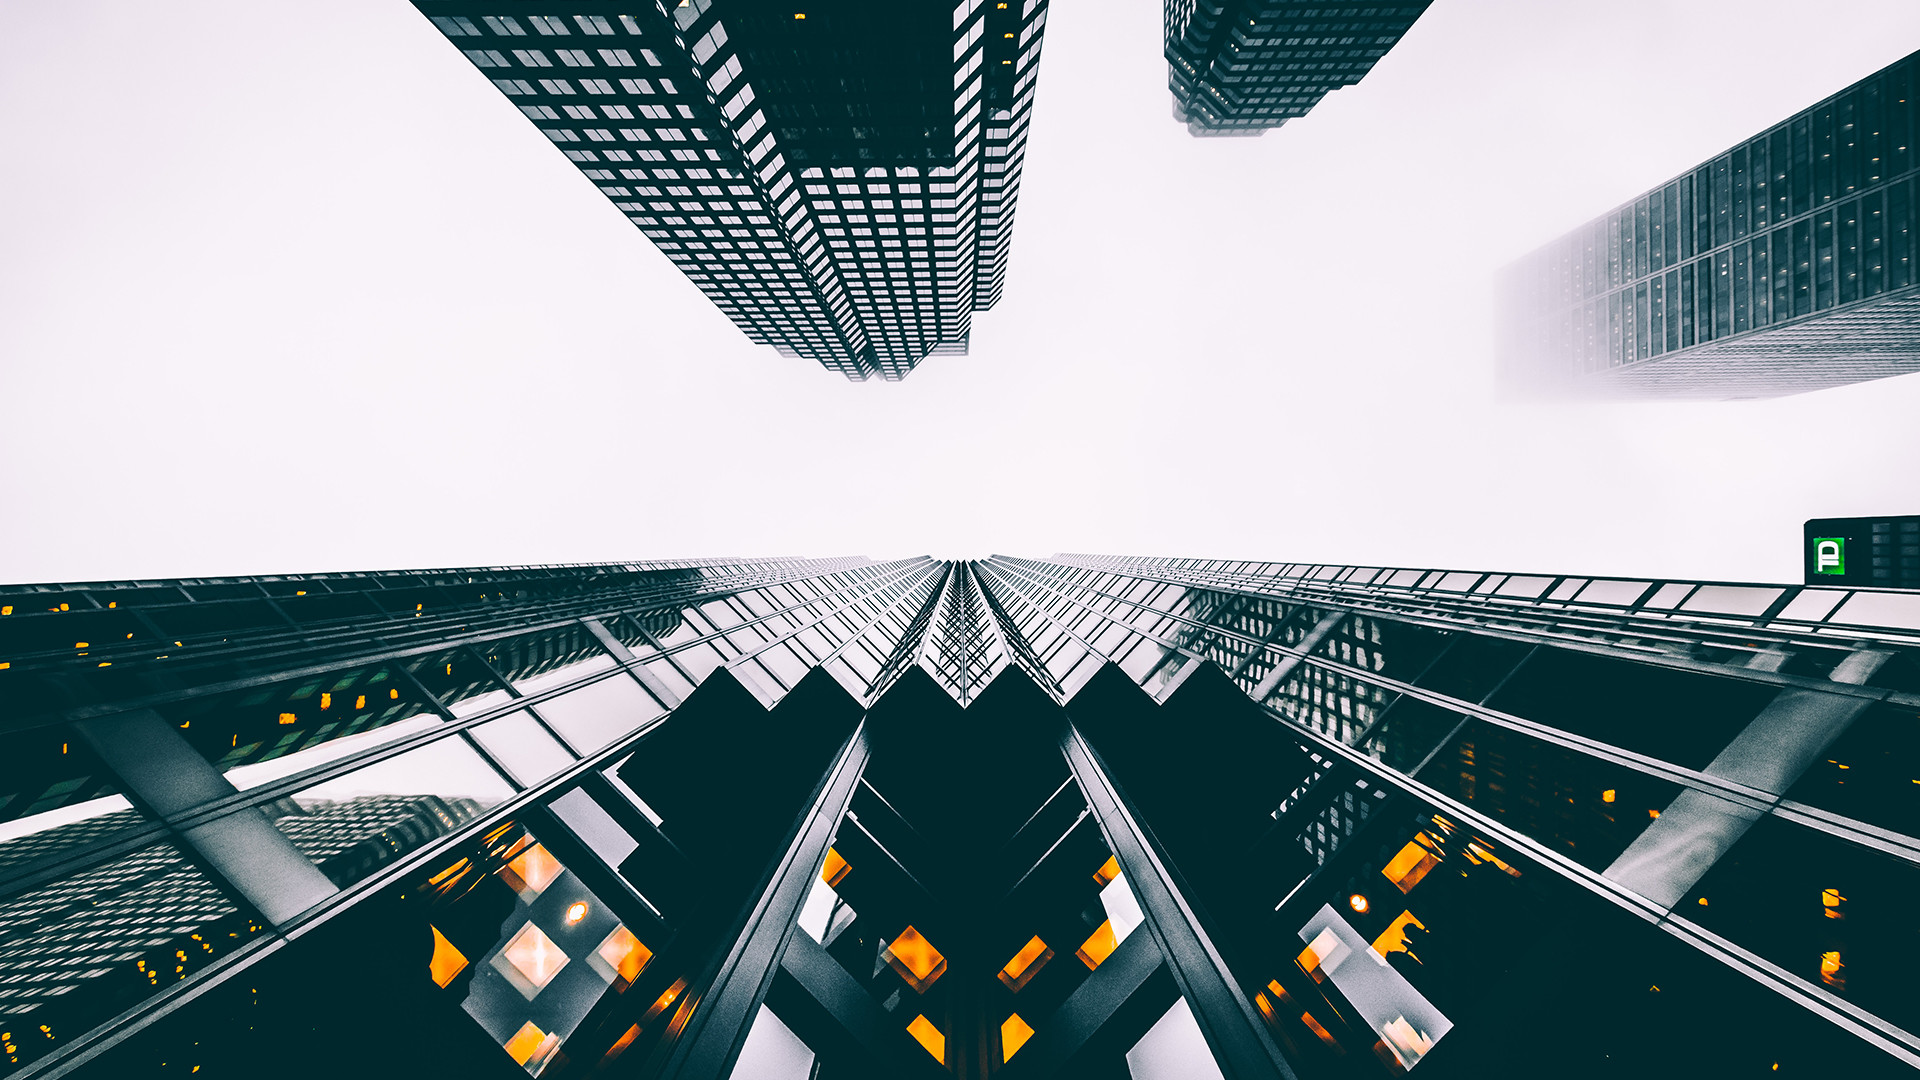 1920x1080 #building, #perspective, #photography, wallpaper